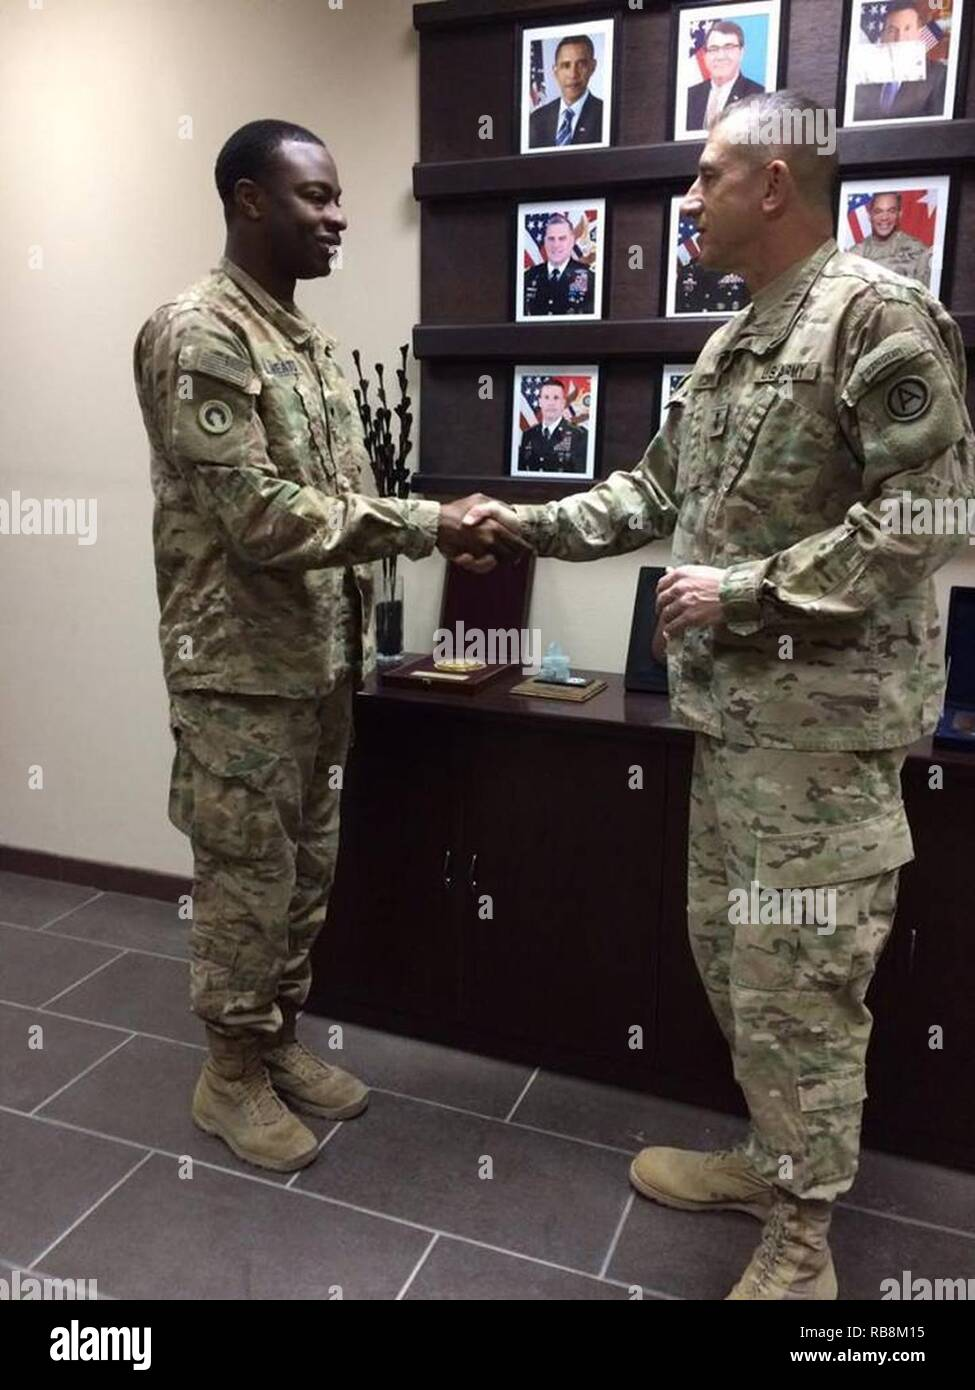 Spc. Chaztein M. Sheats, secetary general staff executive administrative assistant, 1st Sustainment Command (Theater), received a commander's coin for his outstanding service and dedication to duty from Maj. Gen. William Hickman, deputy commanding general, operational command post, United States Army Central, Dec. 17, at Camp Arifjan, Kuwait.     Sheats went above and beyond working outside his assigned duties and assisted the ARCENT and 29th Infantry Division G1 Personnel sections for more than 60 days. - Stock Image